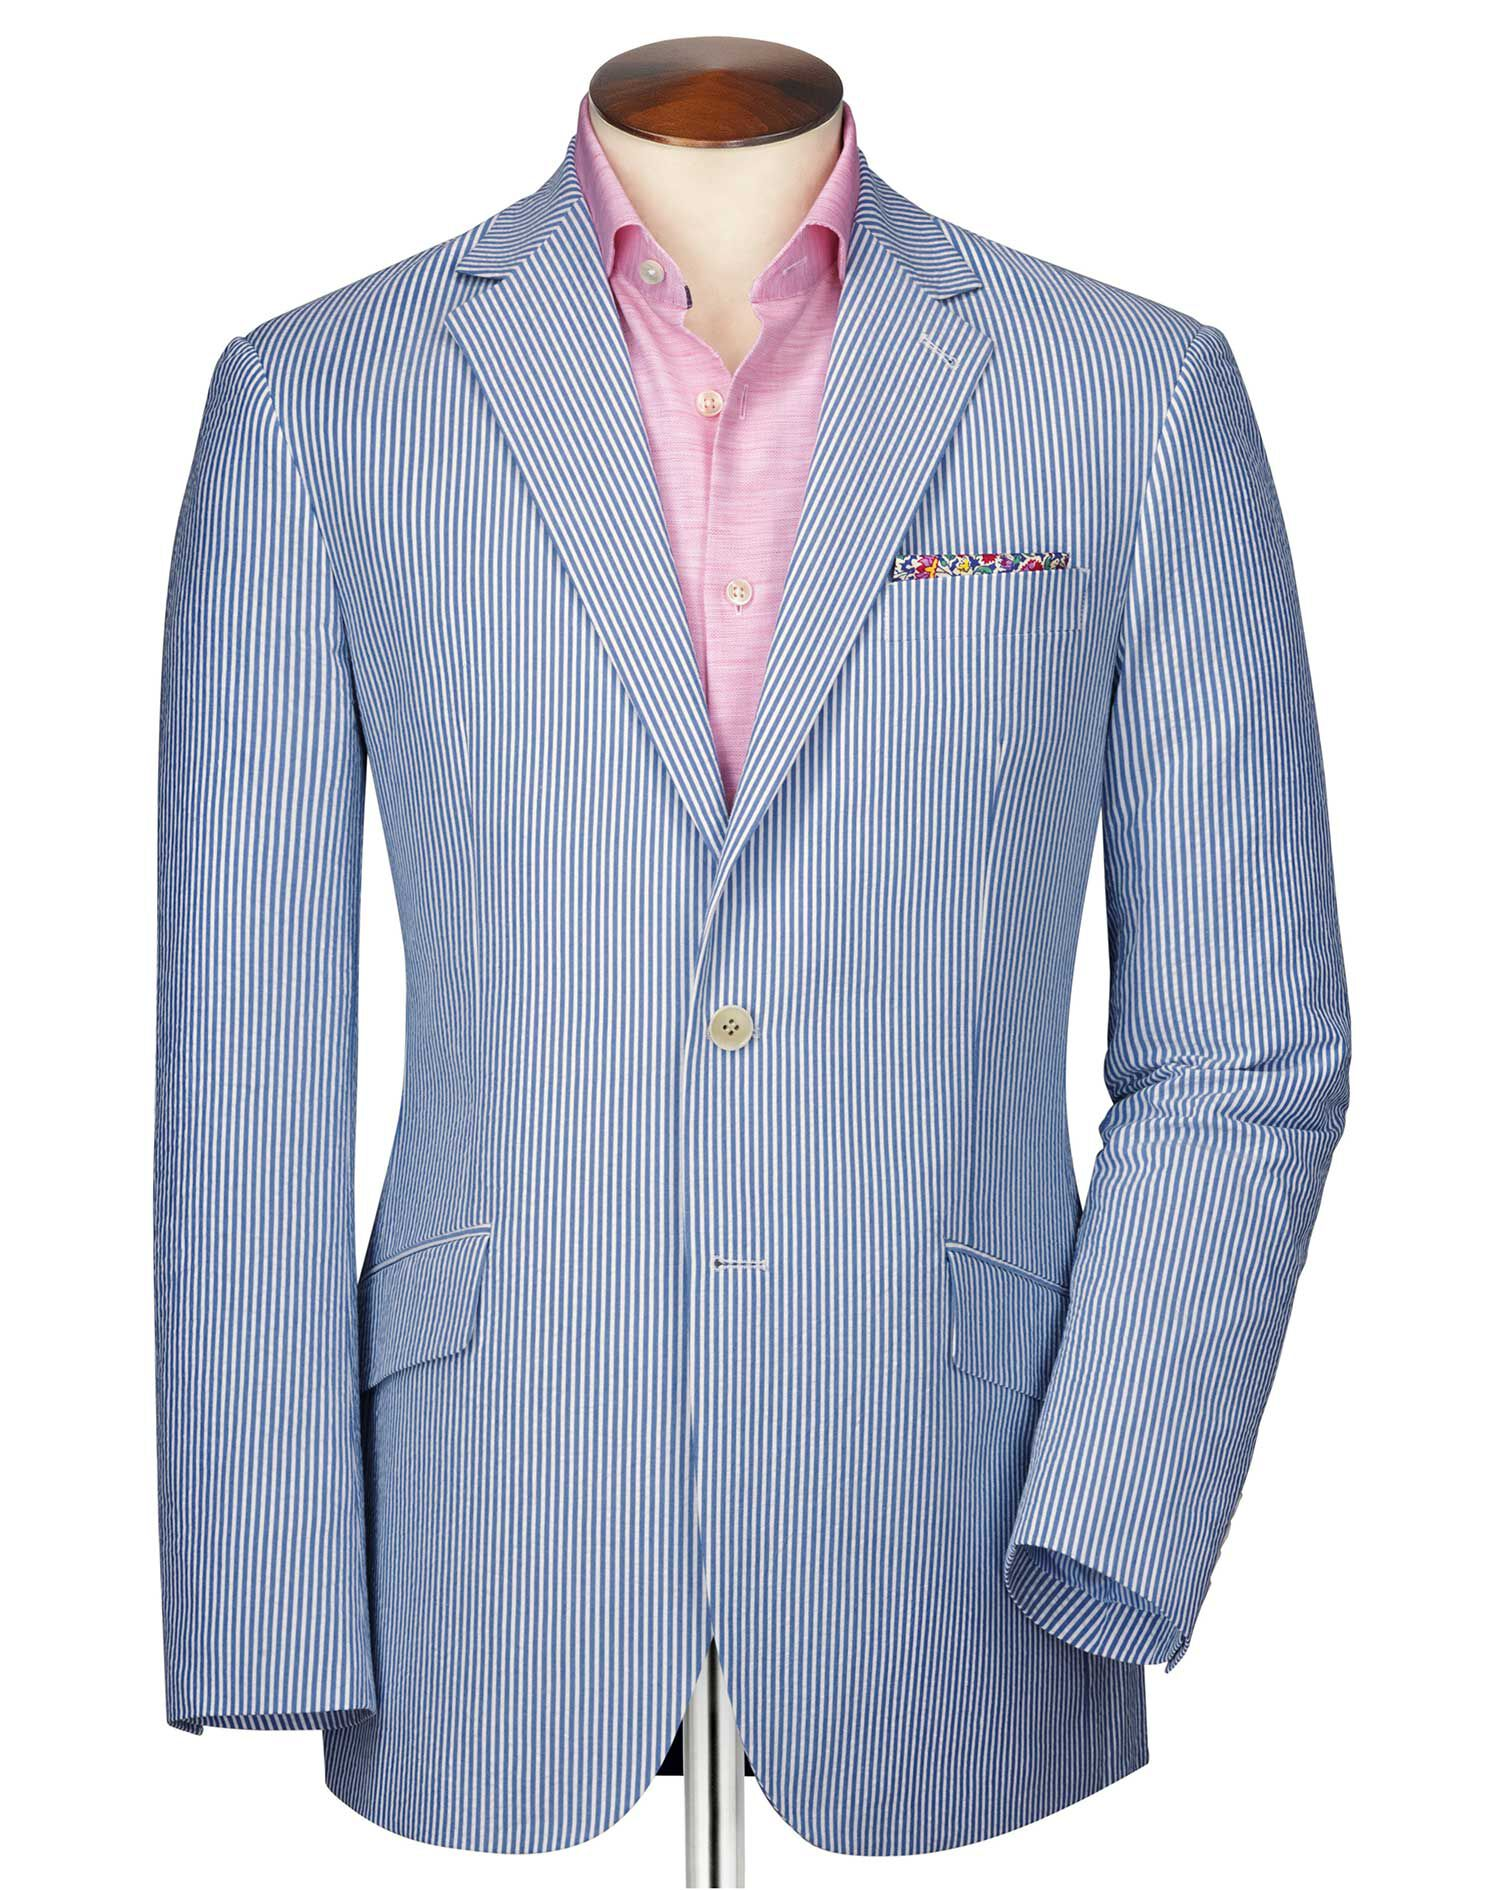 Slim Fit Blue and White Striped Seersucker Cotton Jacket Size 46 by Charles Tyrwhitt